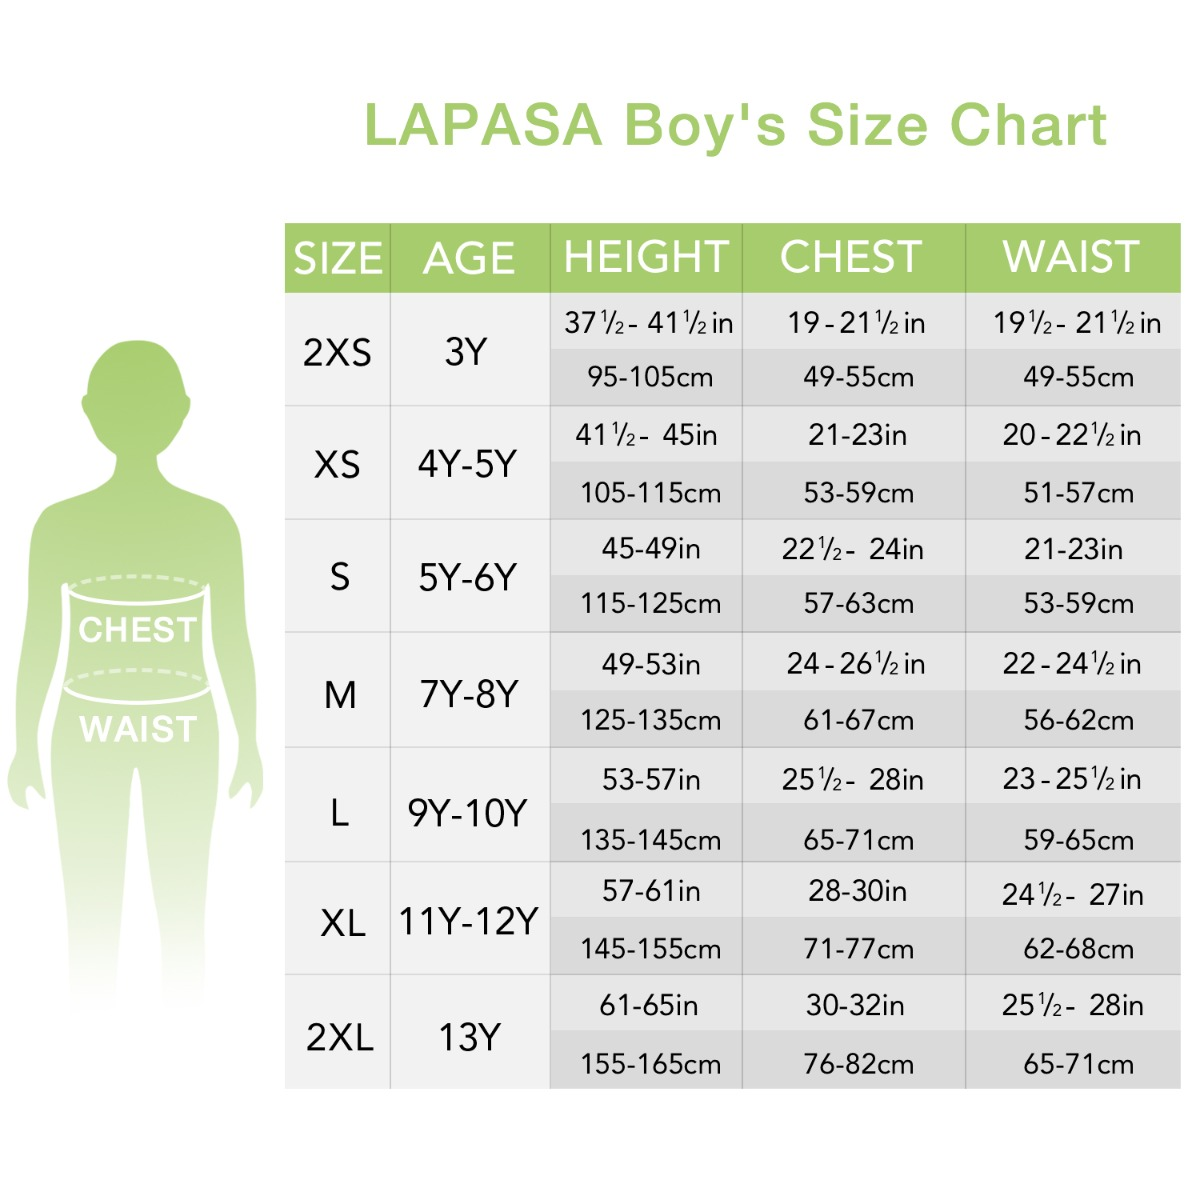 US boys' set size chart